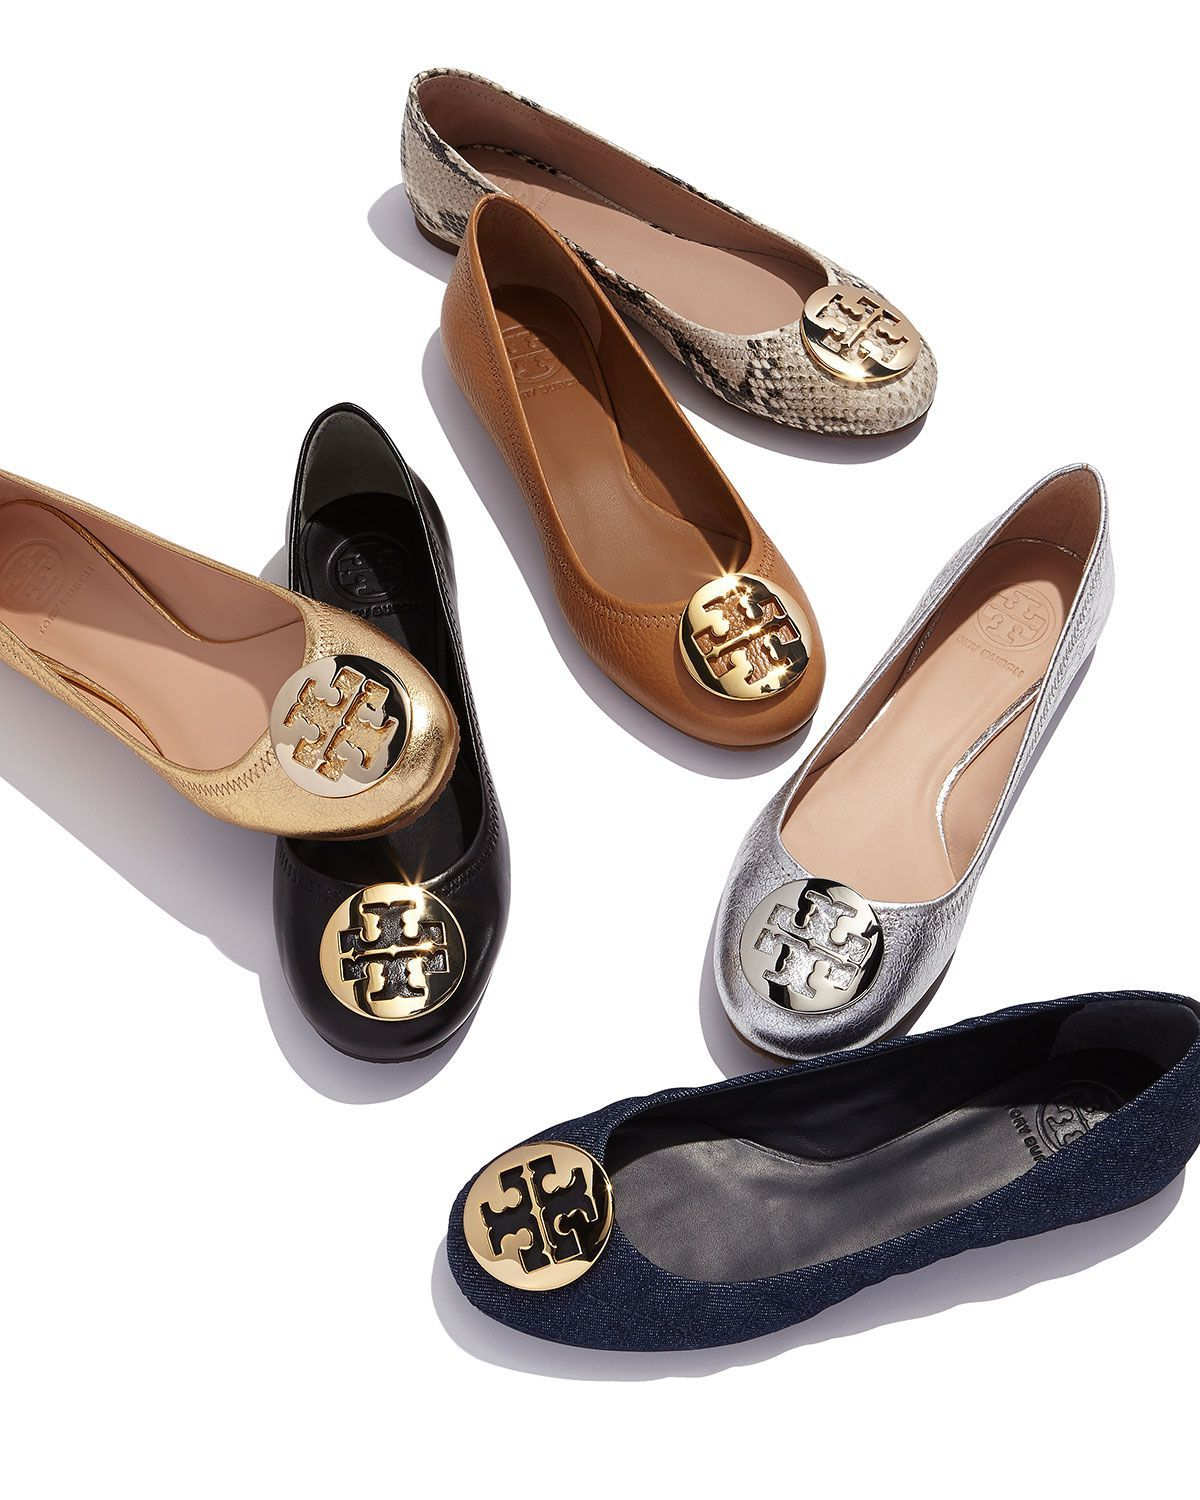 Tory Burch Logo plaque ballerina pumps Cheap Sale 2018 New Style Free Shipping New suknXNcQ